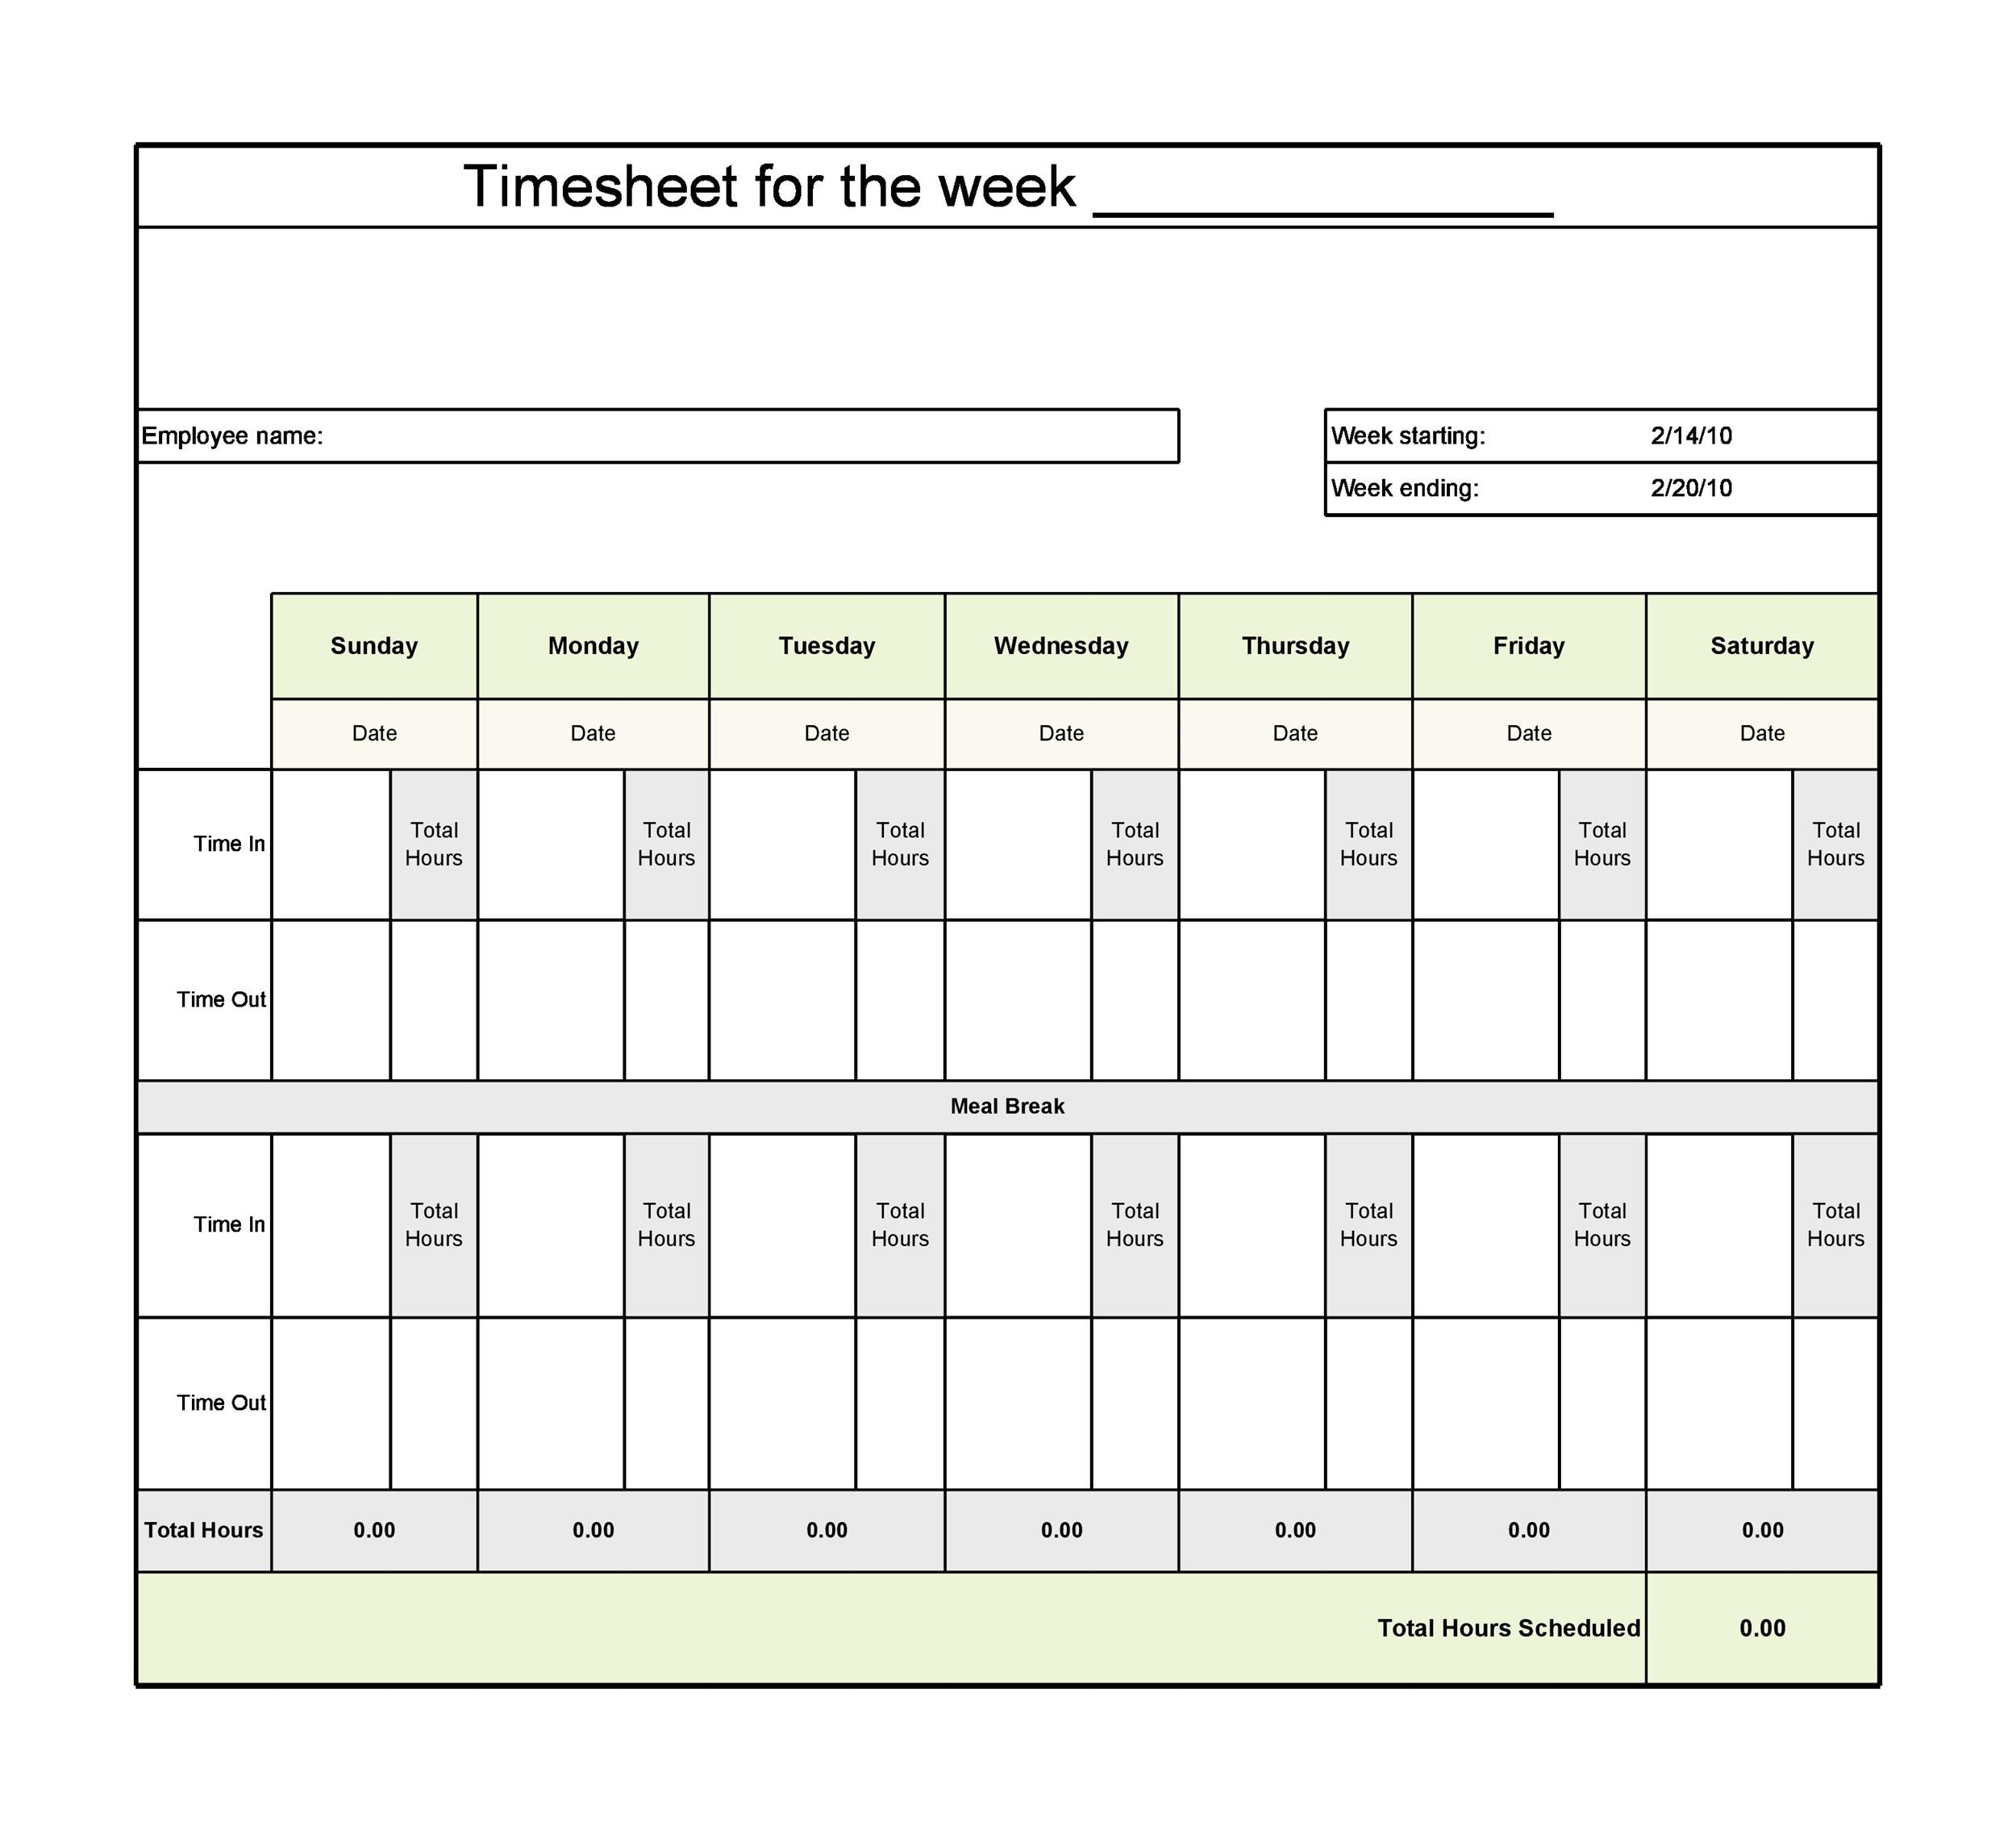 graphic relating to Free Printable Timesheets named 40 Free of charge Timesheet / Year Card Templates ᐅ Template Lab